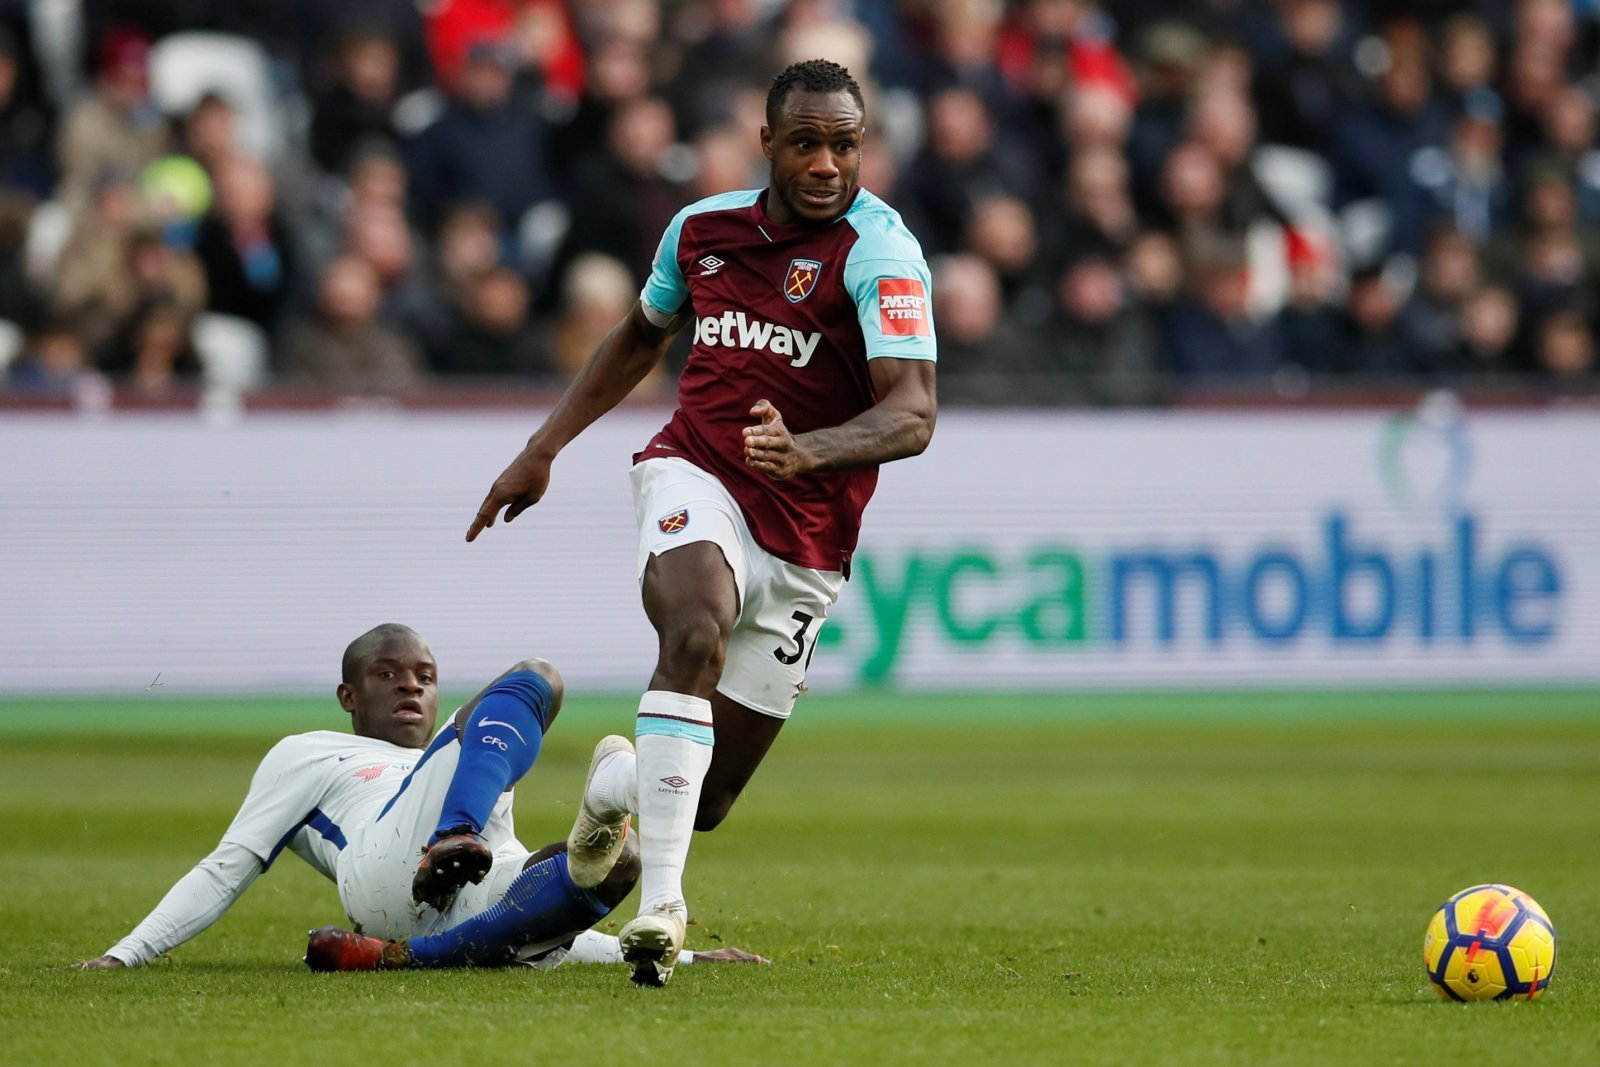 Michail Antonio's biggest strength may be his biggest weakness under Pellegrini